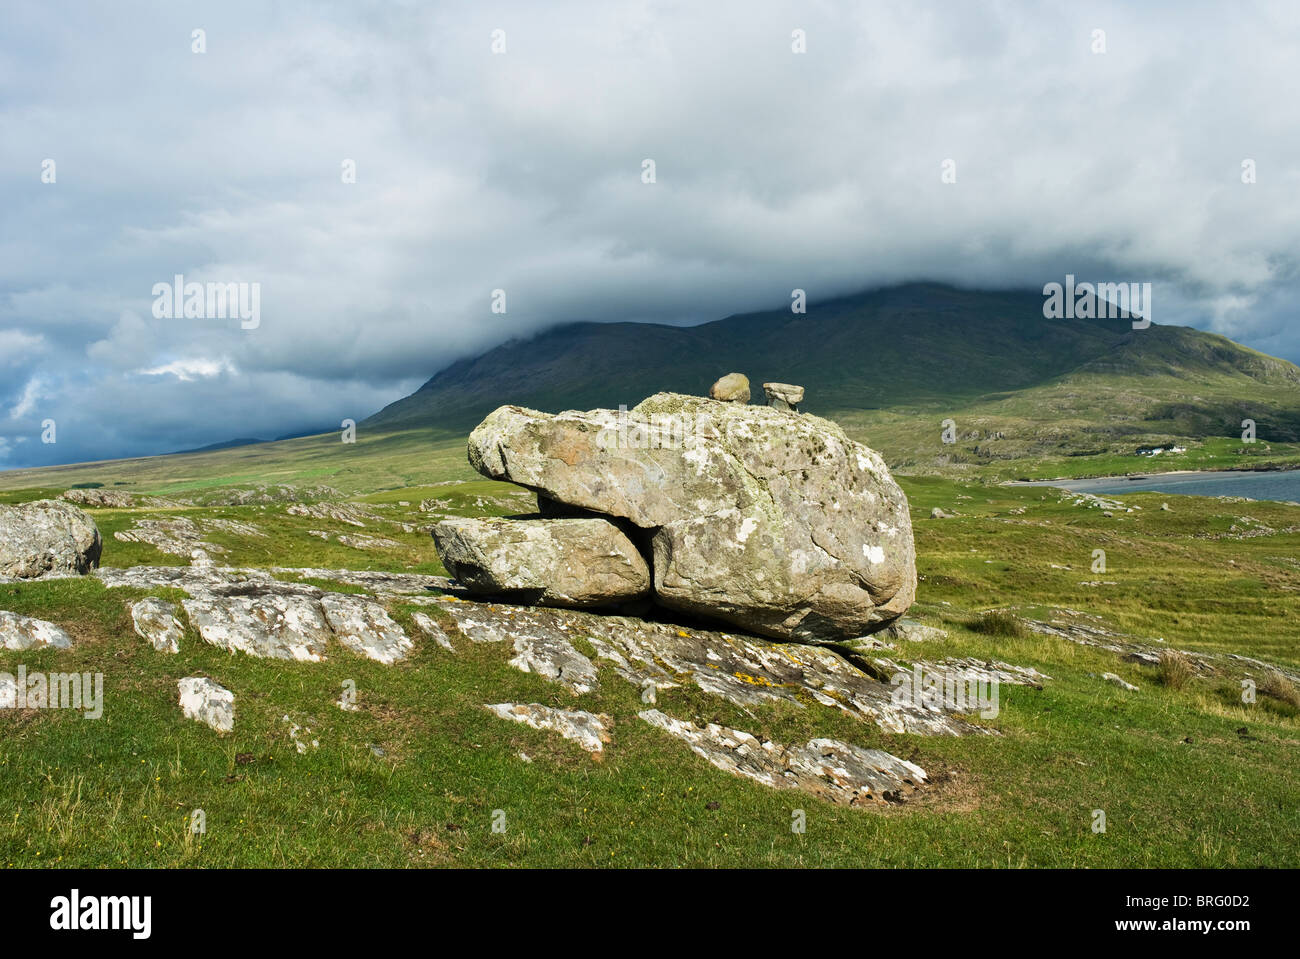 An anthropomorphic boulder at the foot of cloud shrouded Mweelrea mountain, county Mayo, Ireland - Stock Image